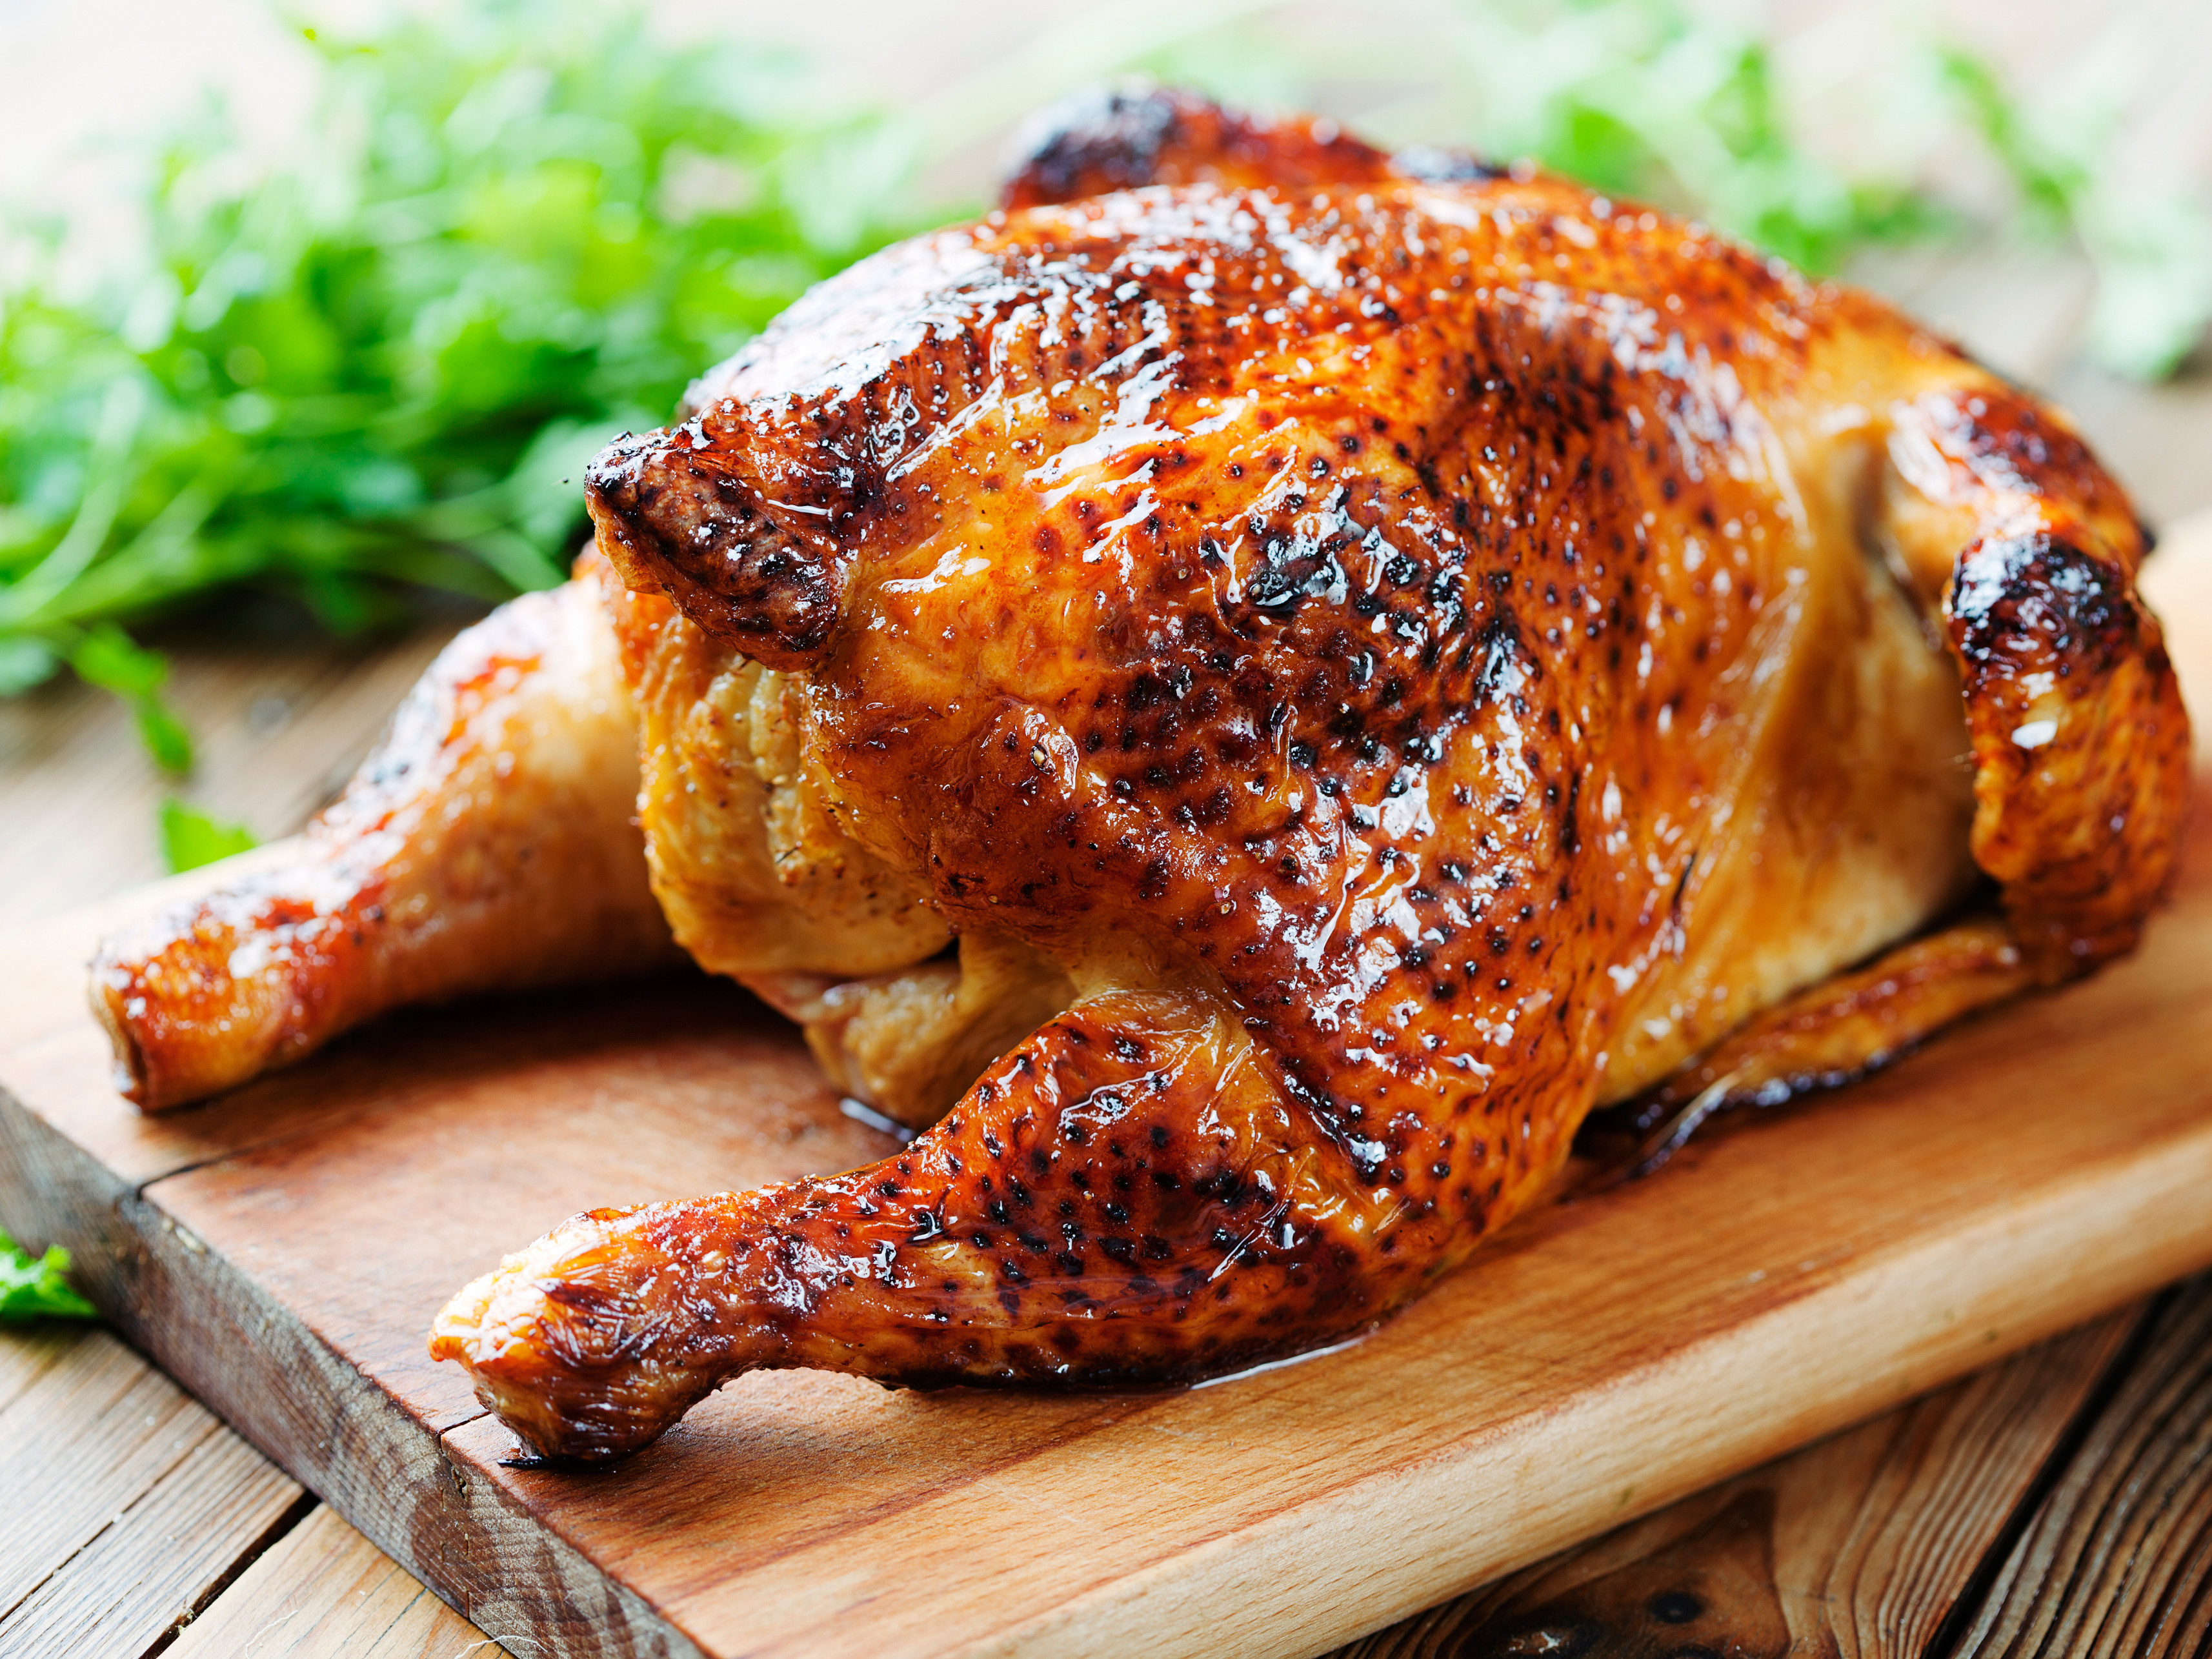 How To Make Baked Chicken  In the kitchen with Kelley Roasted Chicken Easy Health